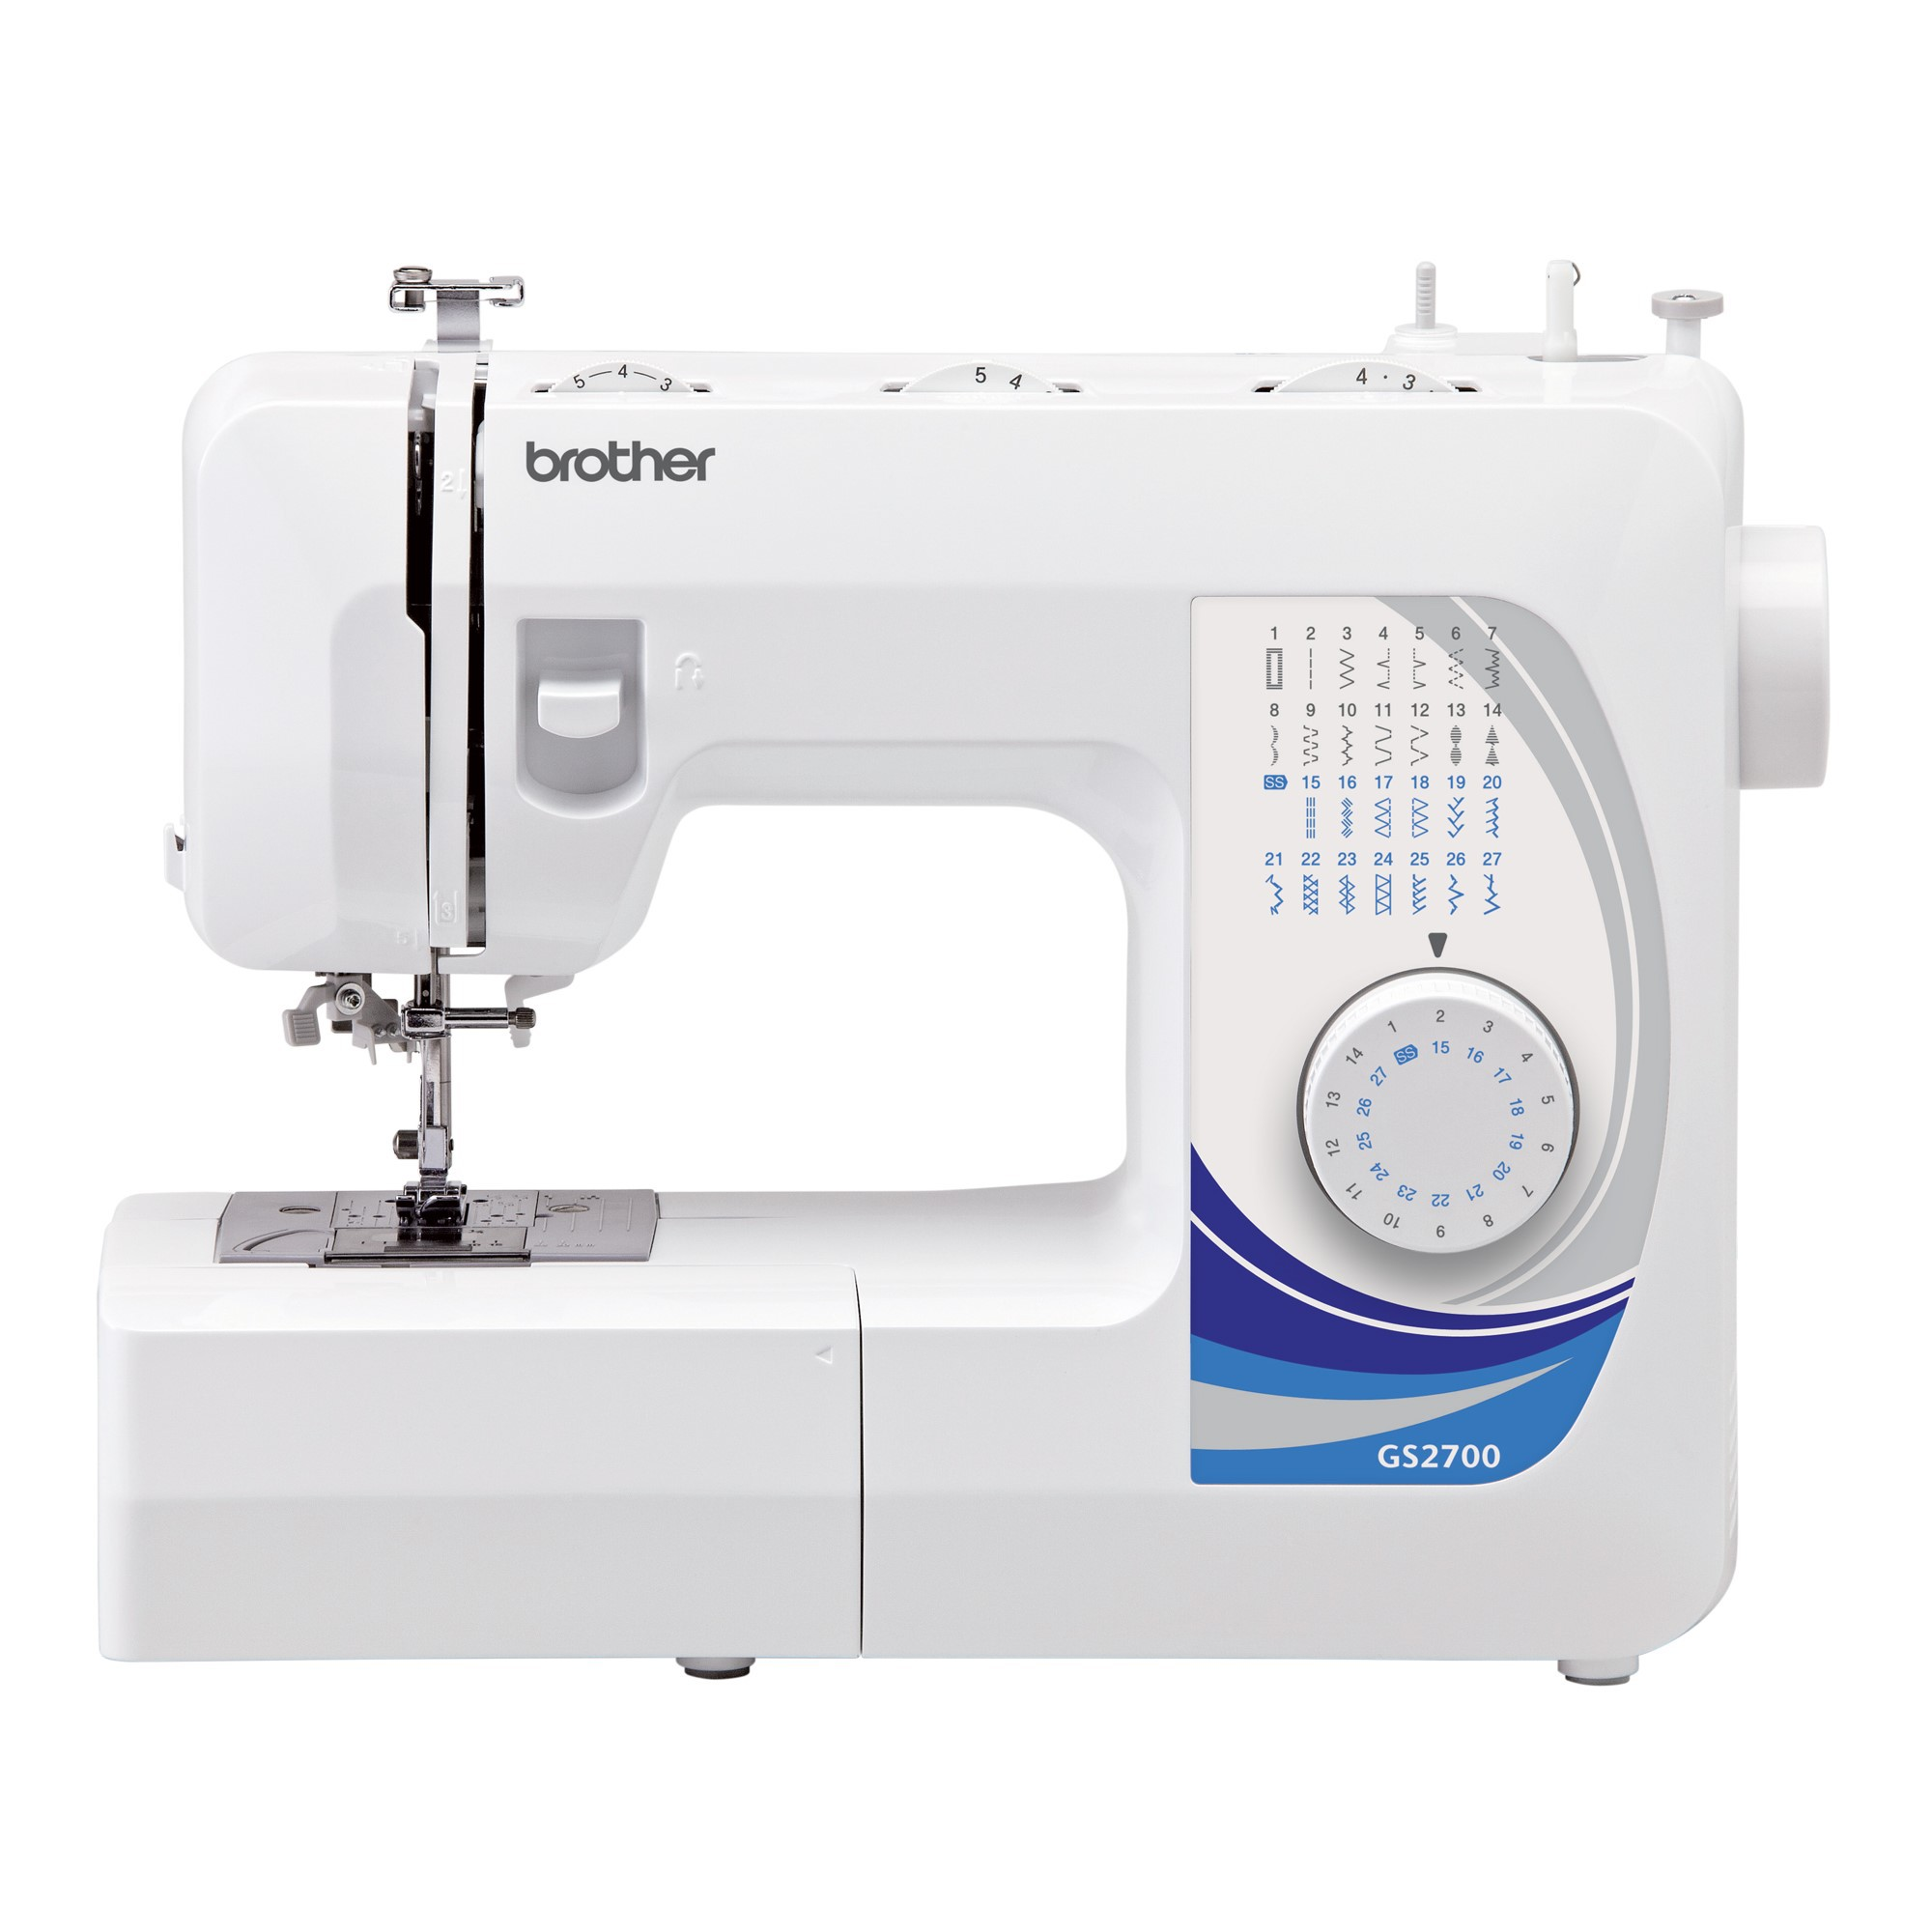 Cheap Sewing Machines Australia Best Brother Gs2510 Sewing Machine Prices In Australia Getprice